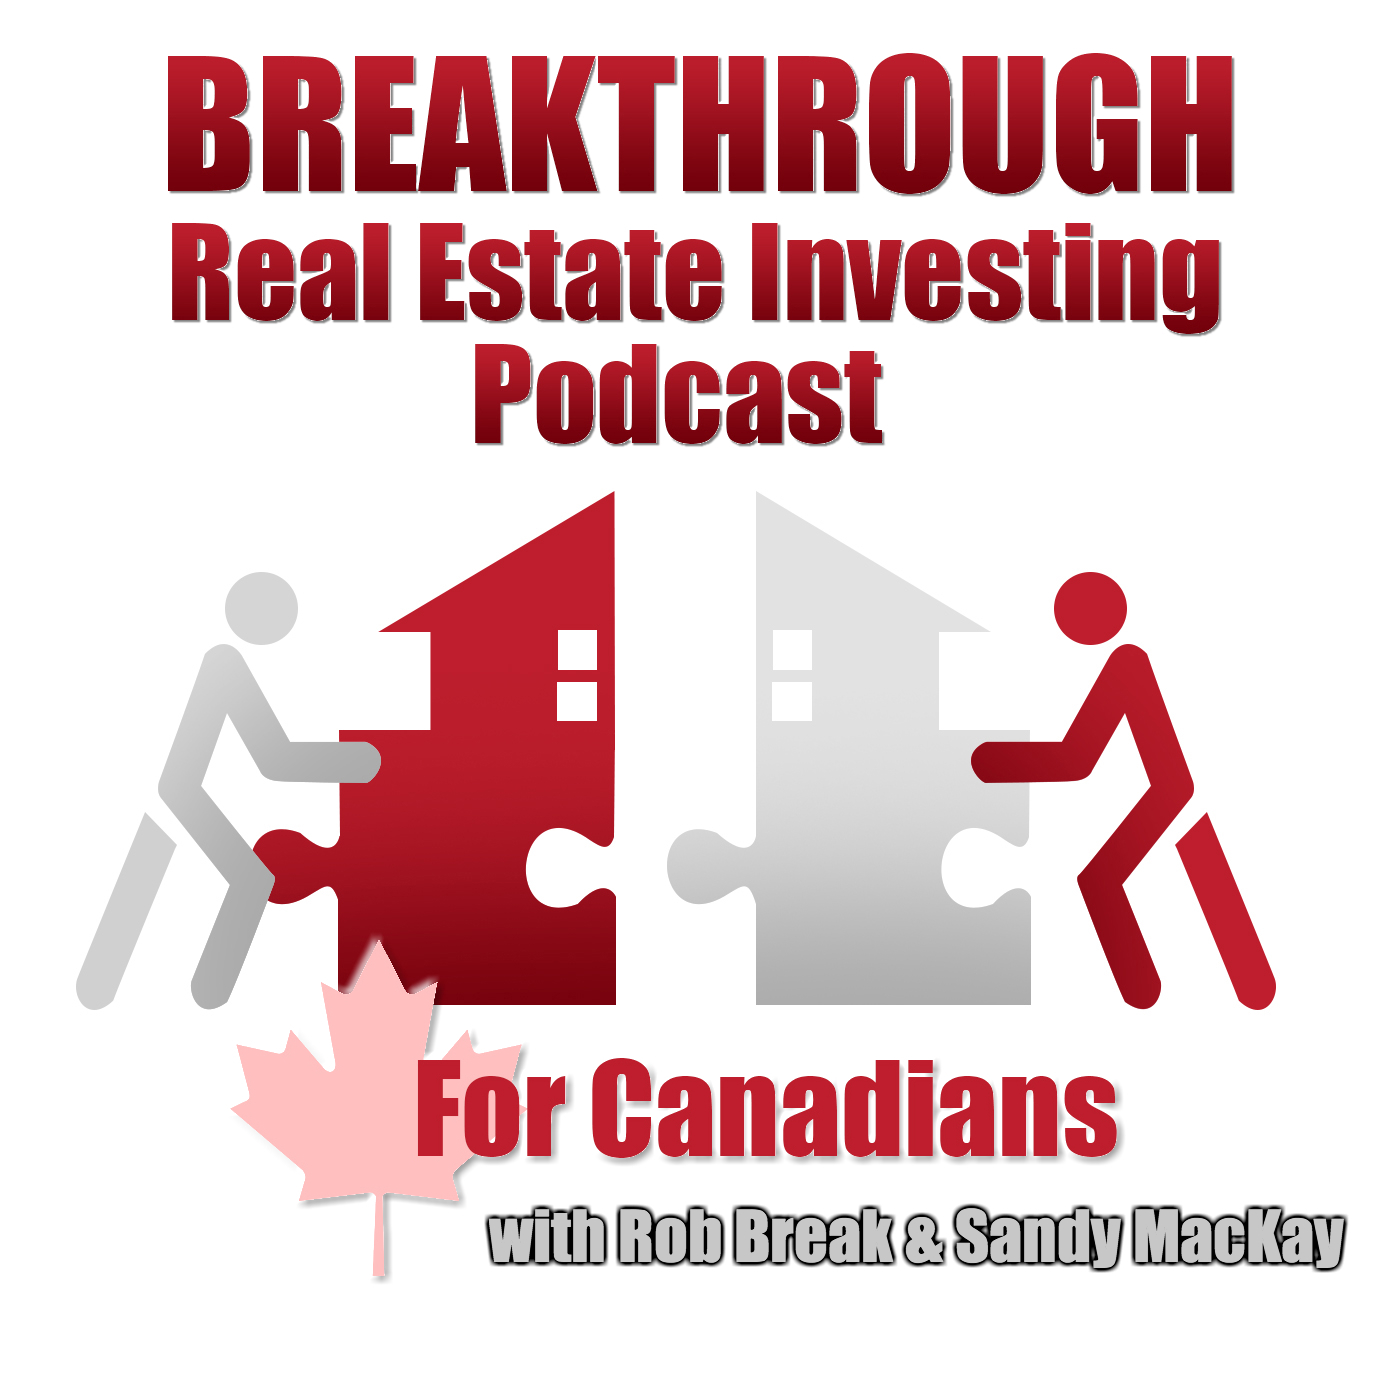 Breakthrough Real Estate Investing Podcast: Canadian | Investments | Education » Episode 38: Maximize Cashflow with the Buy, Fix, Refinance and Rent Strategy